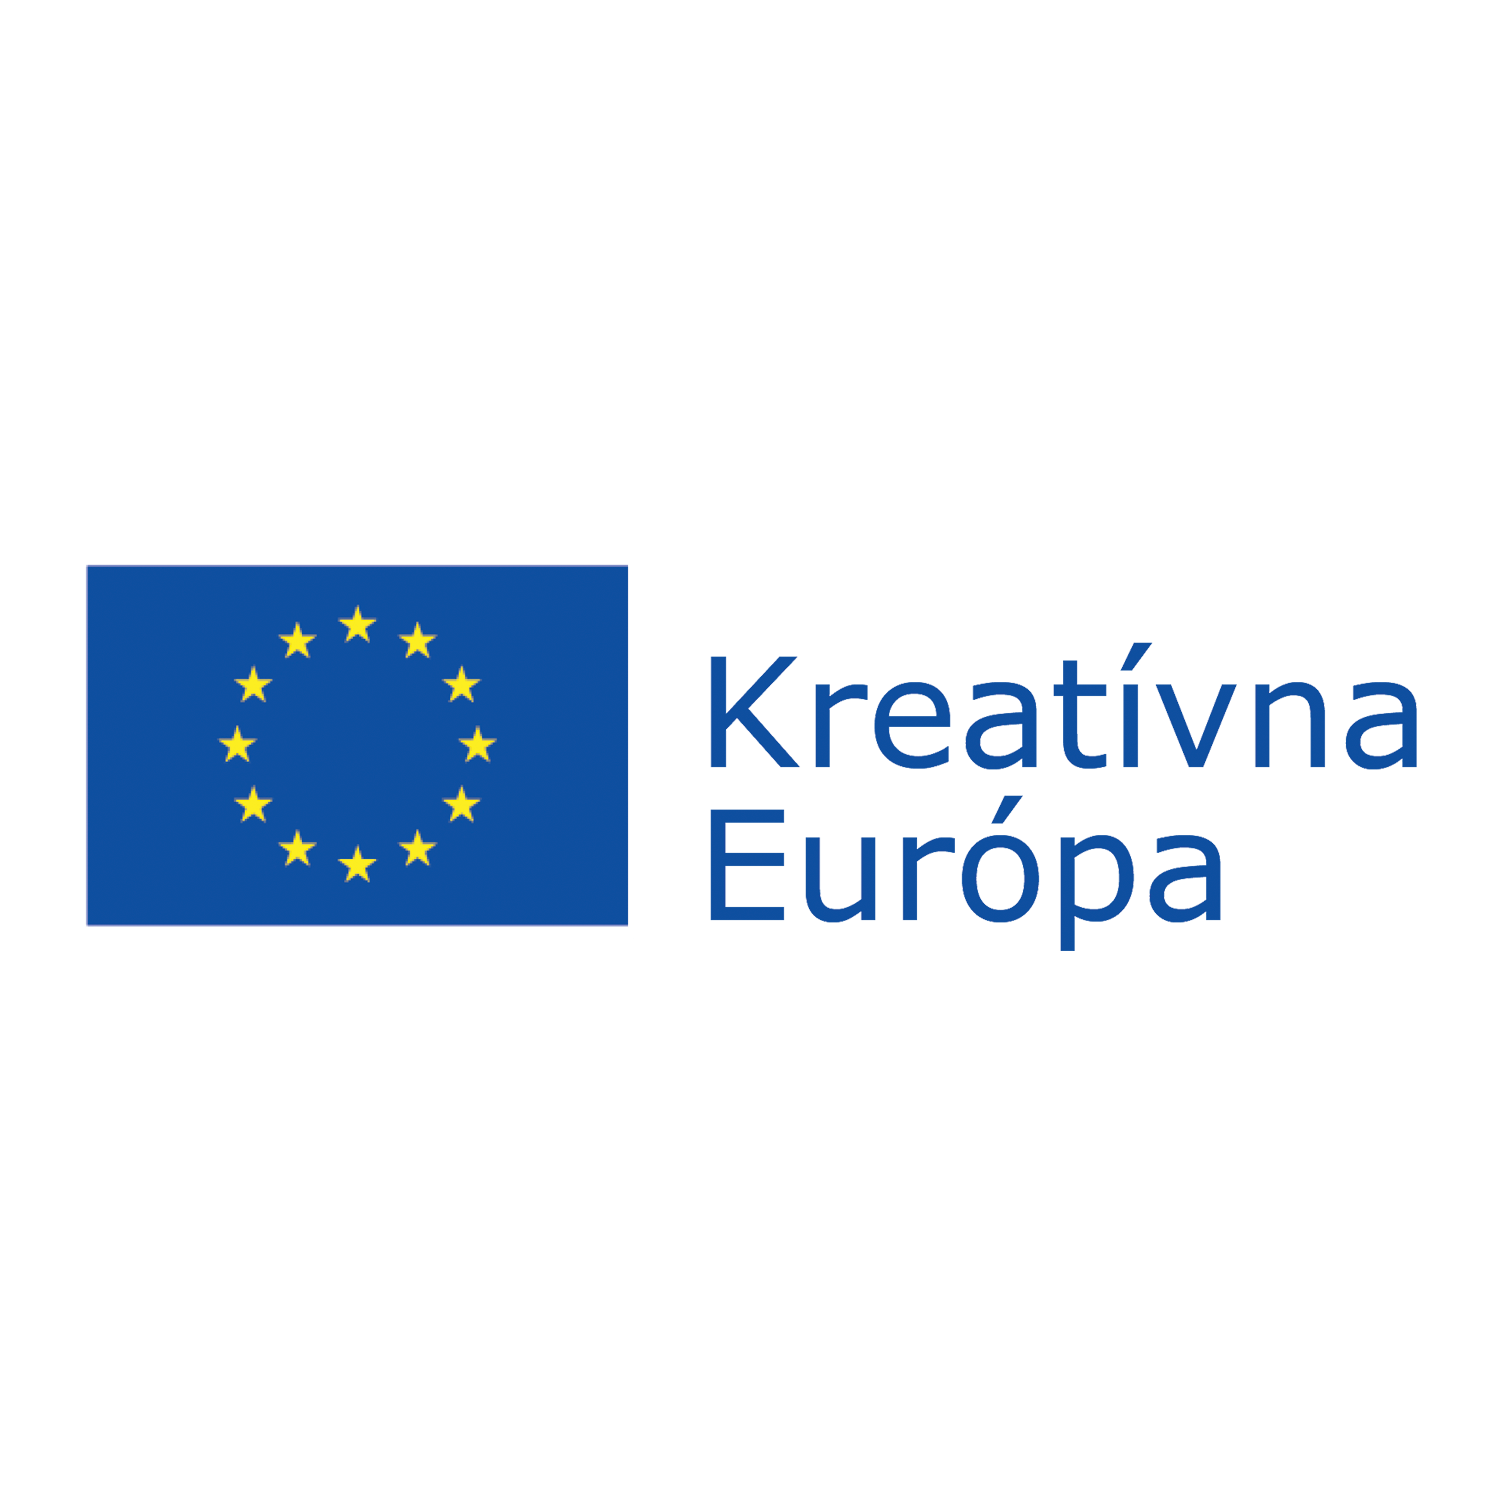 creative-europe-SK.png